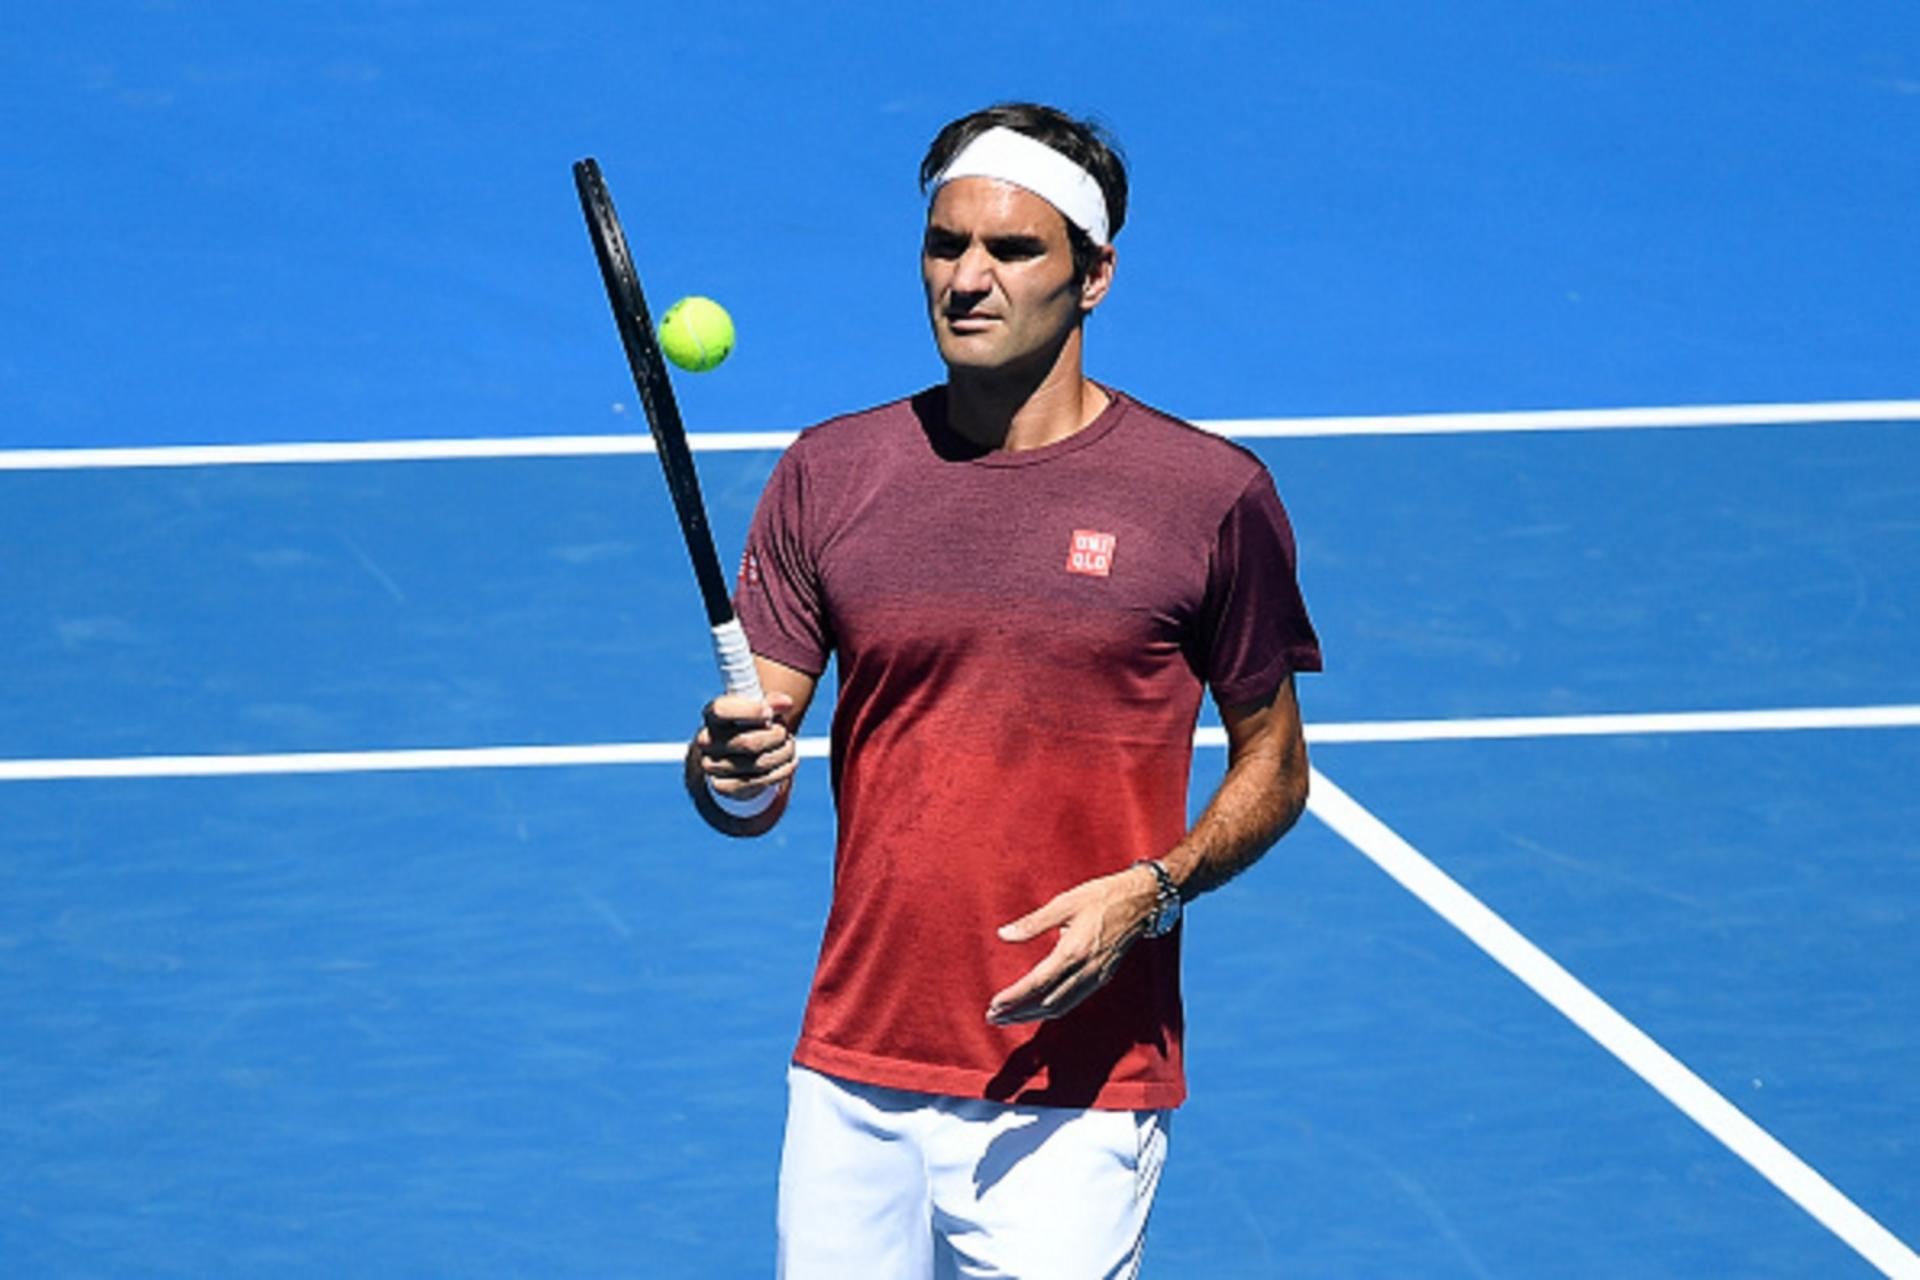 Roger Federer We Have Awful Looking Tennis Outfits